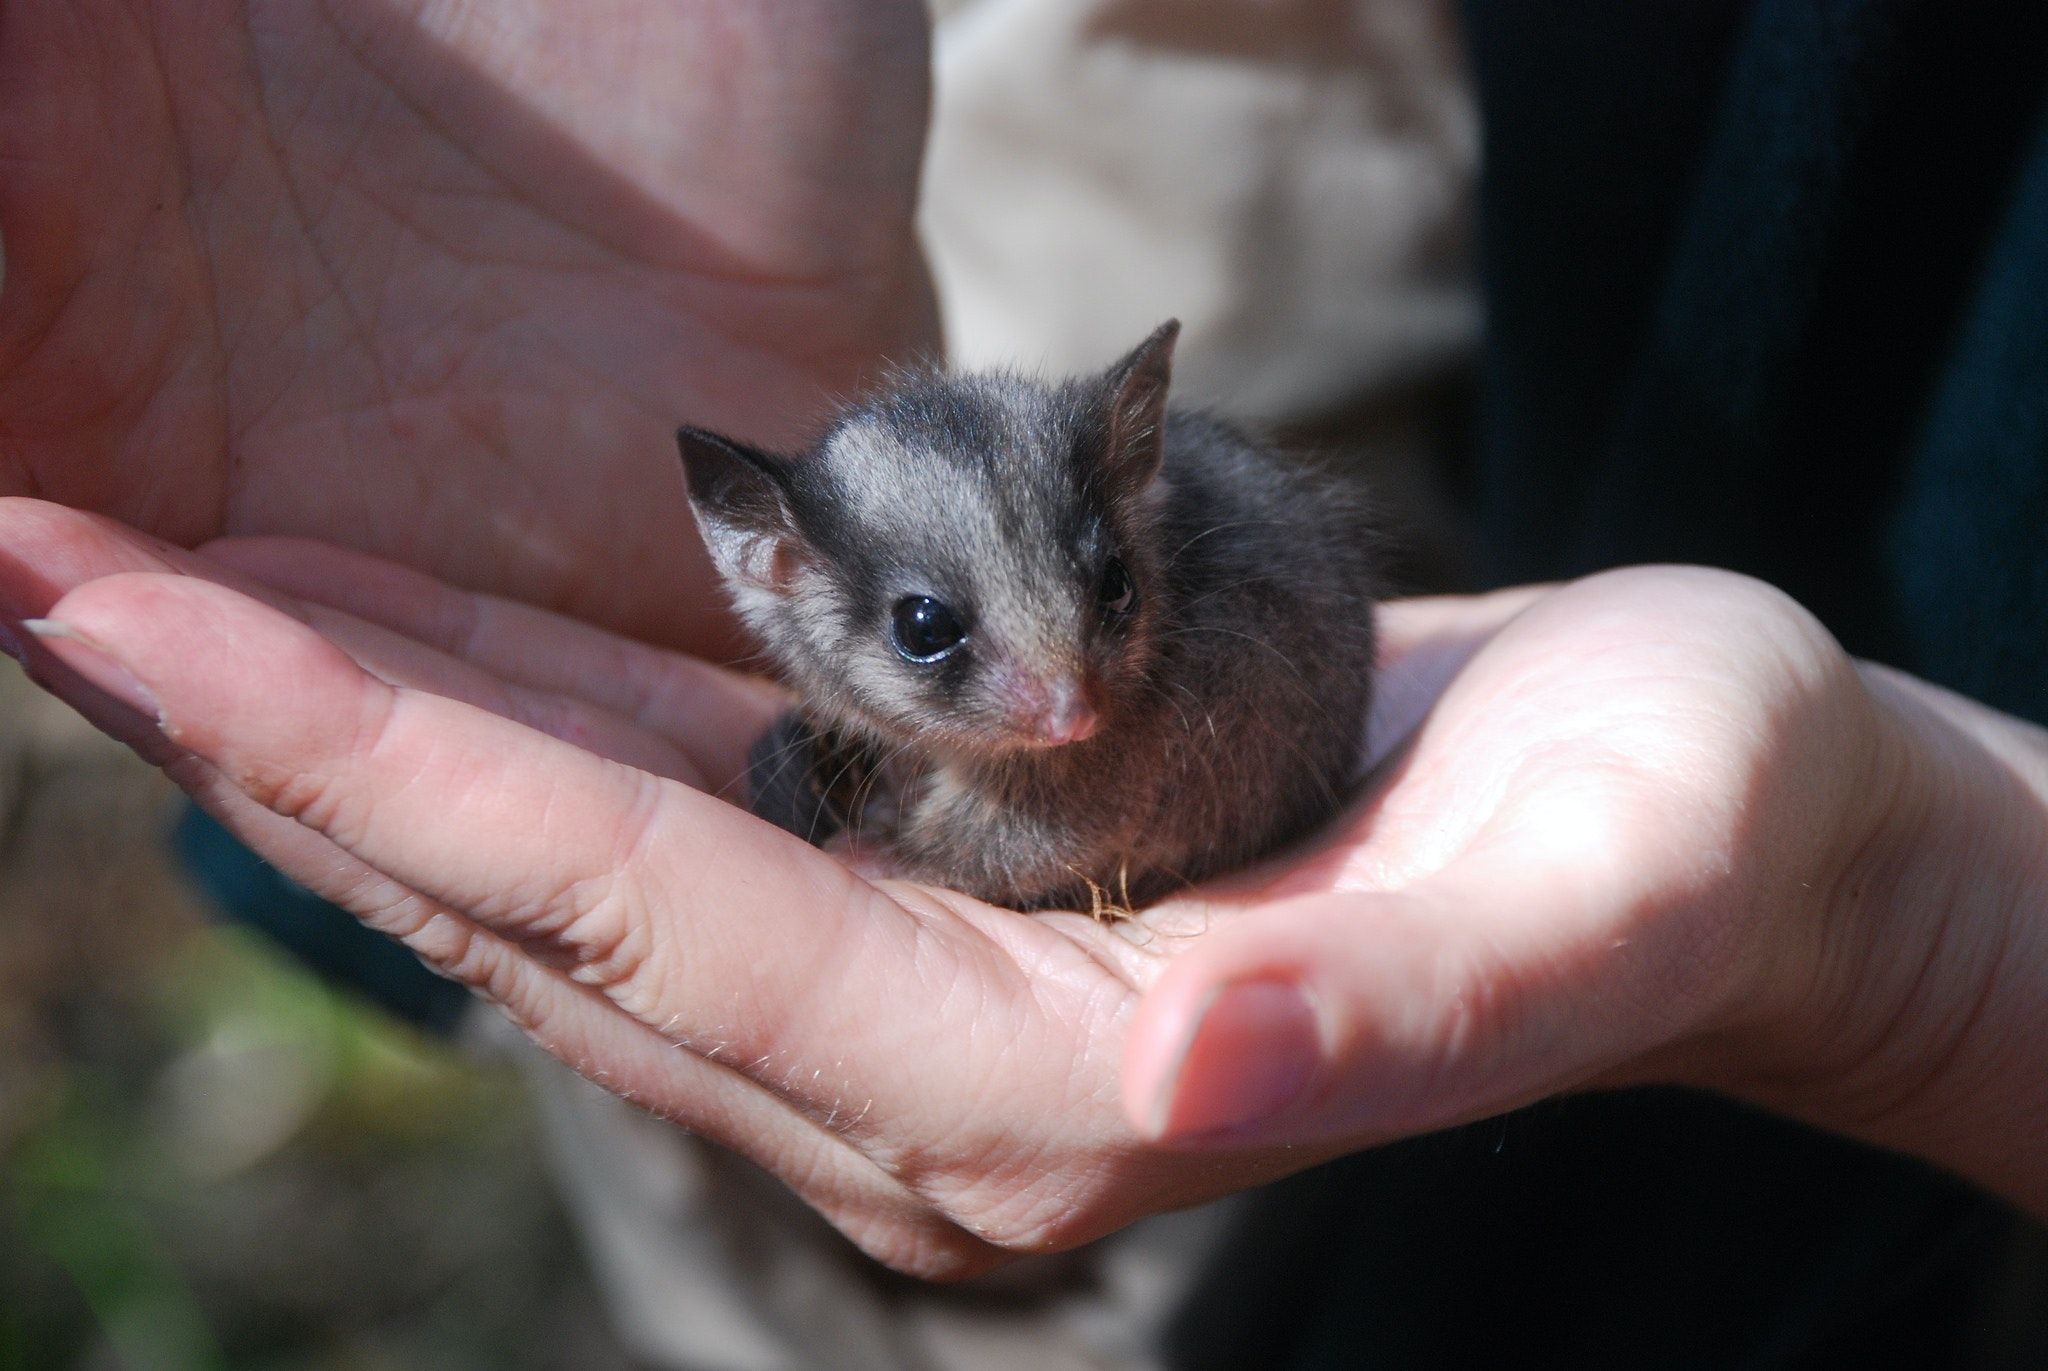 The collapse of Mountain Ash forests threatens Leadbeater's Possum with extinction.